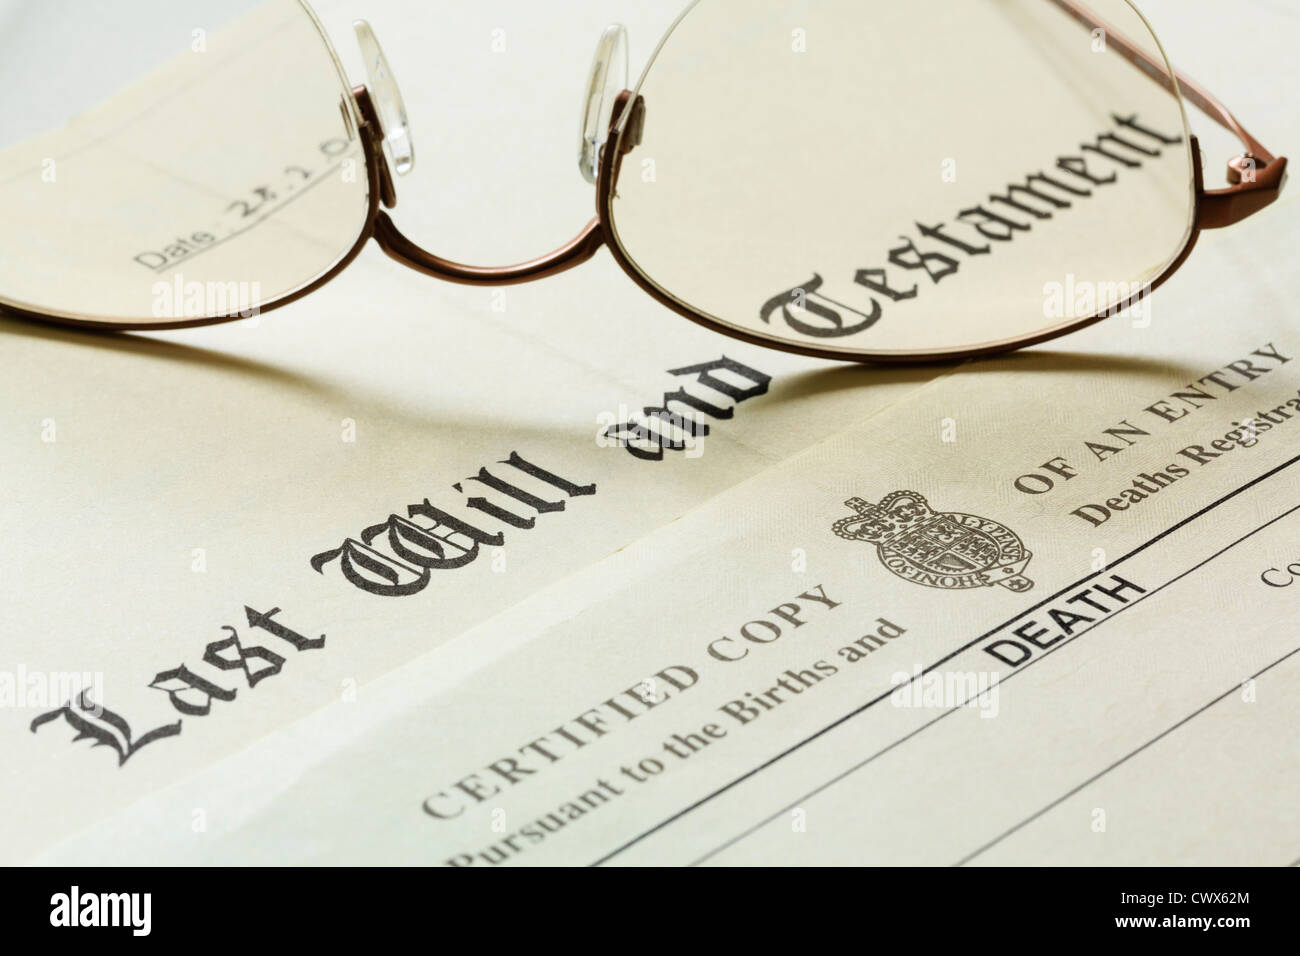 Last Will and Testament document with a Death Certificate and a pair of rose-tinted metal rimmed glasses. England - Stock Image